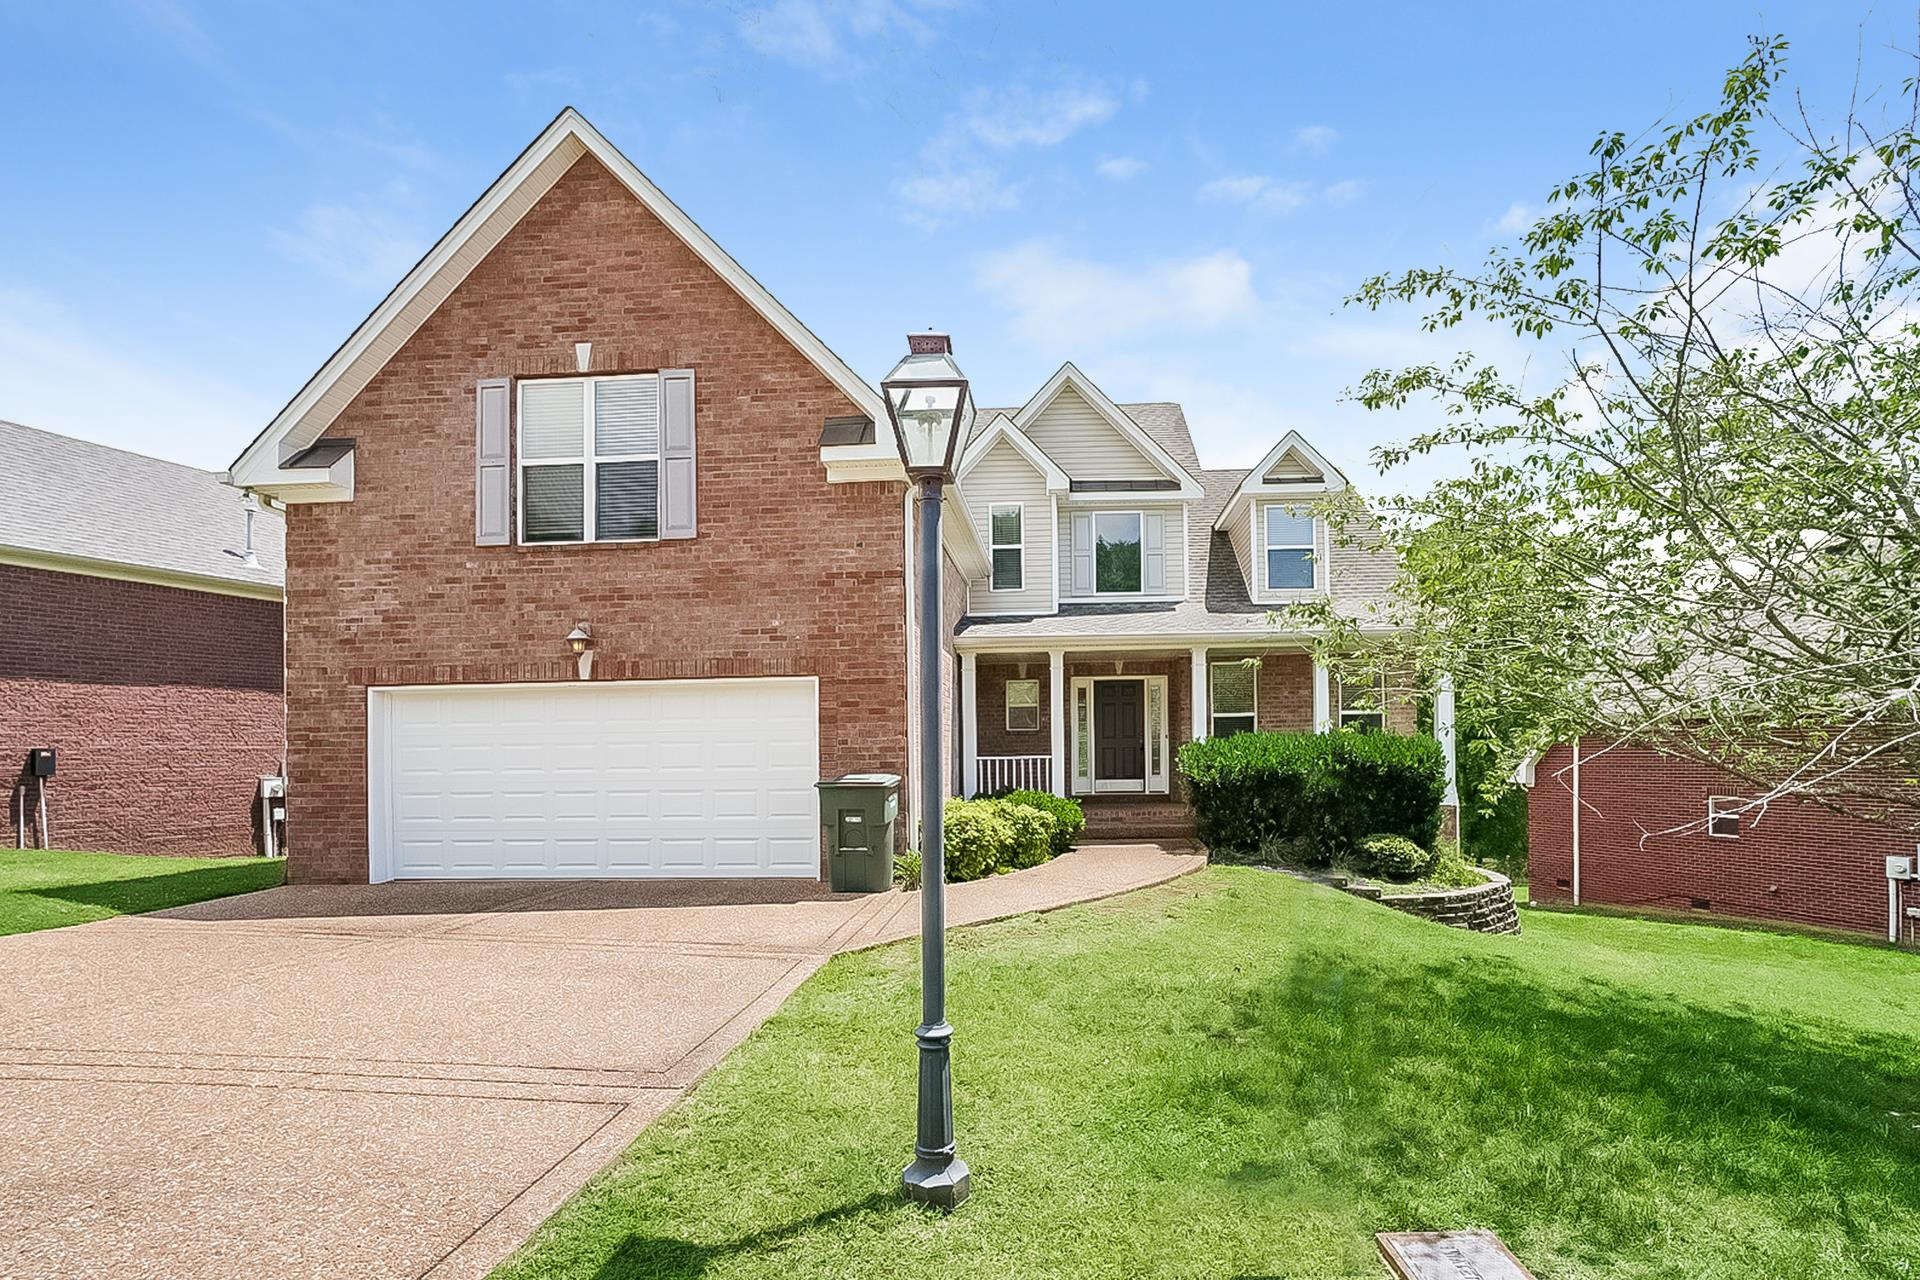 5004 Walden Woods Dr, Hermitage, TN 37076 - Hermitage, TN real estate listing